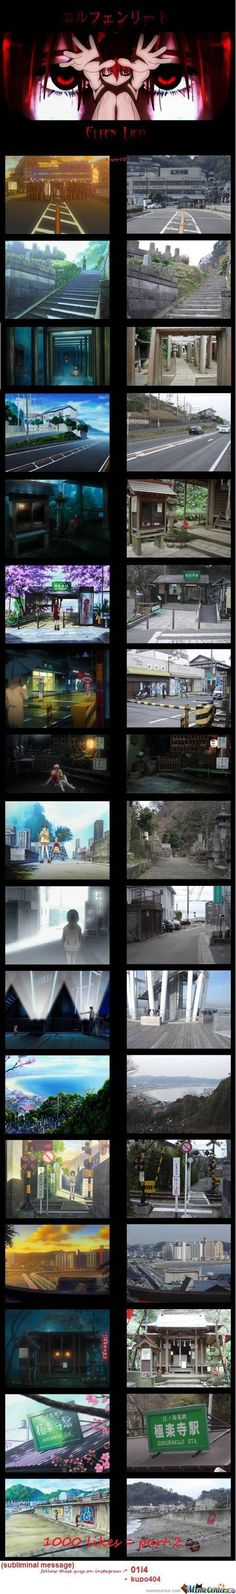 Anime Vs. Real Life Part 1 (Elfen Lied)